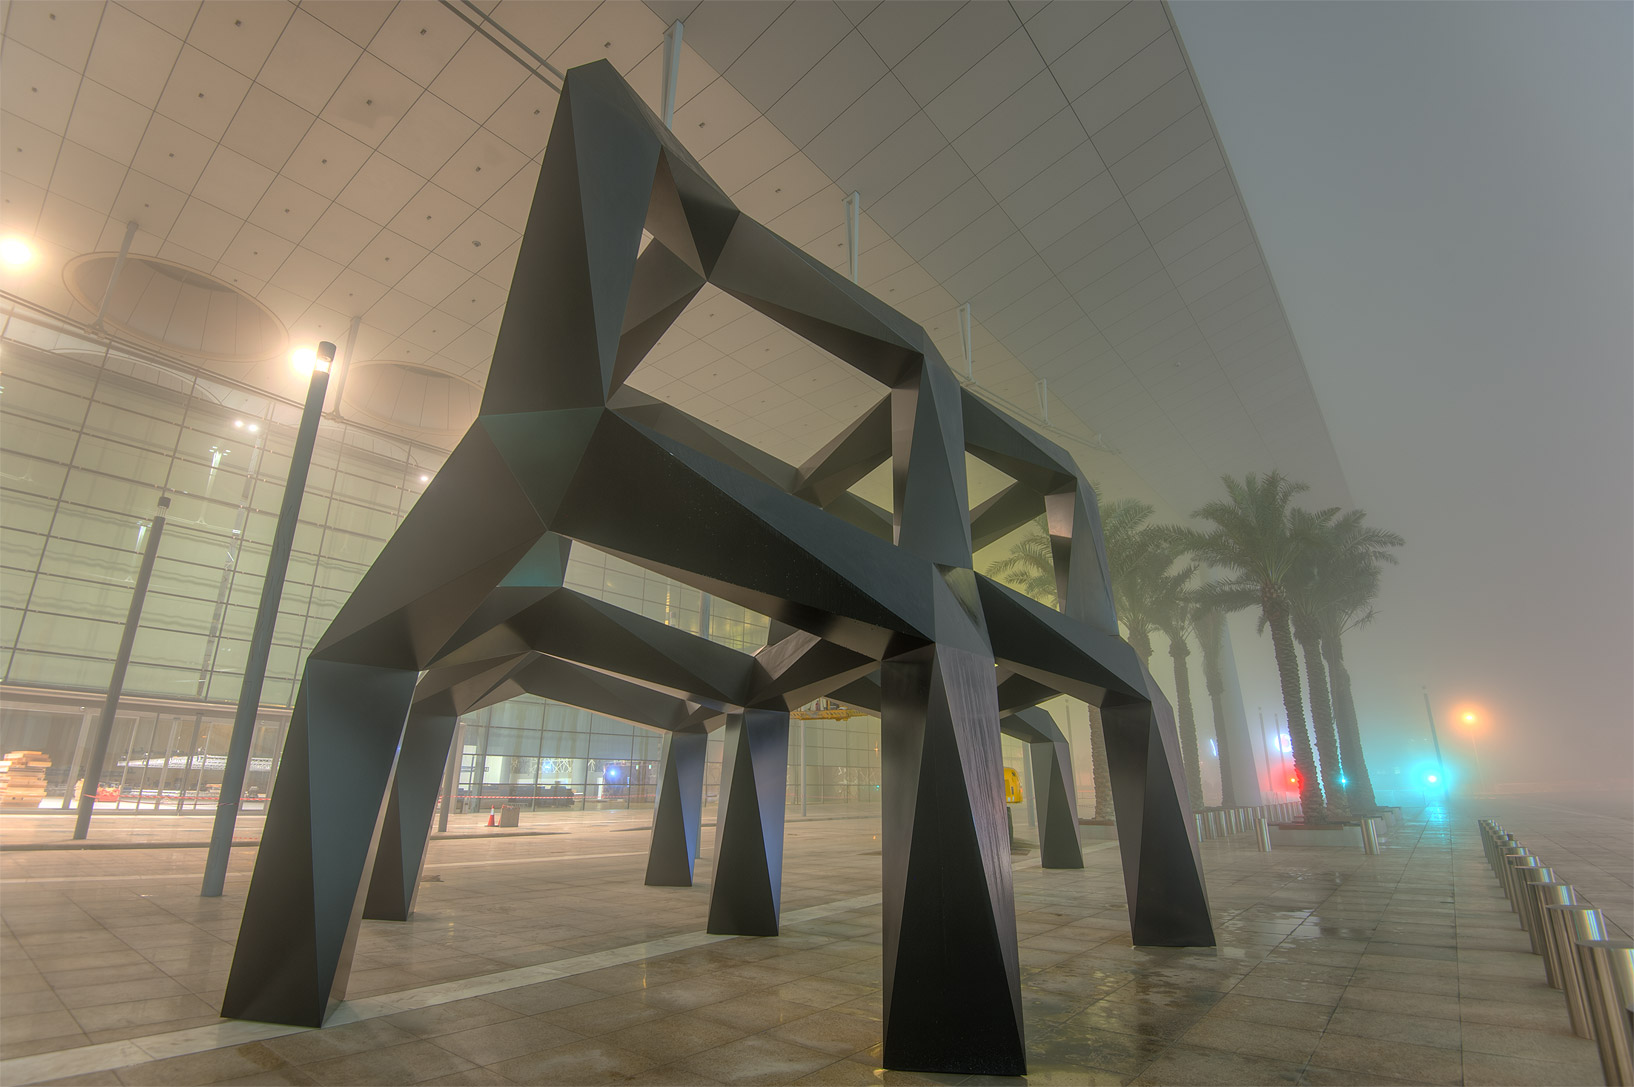 Two-tier aluminum installation Smoke by Tony...mall in West Bay in fog. Doha, Qatar